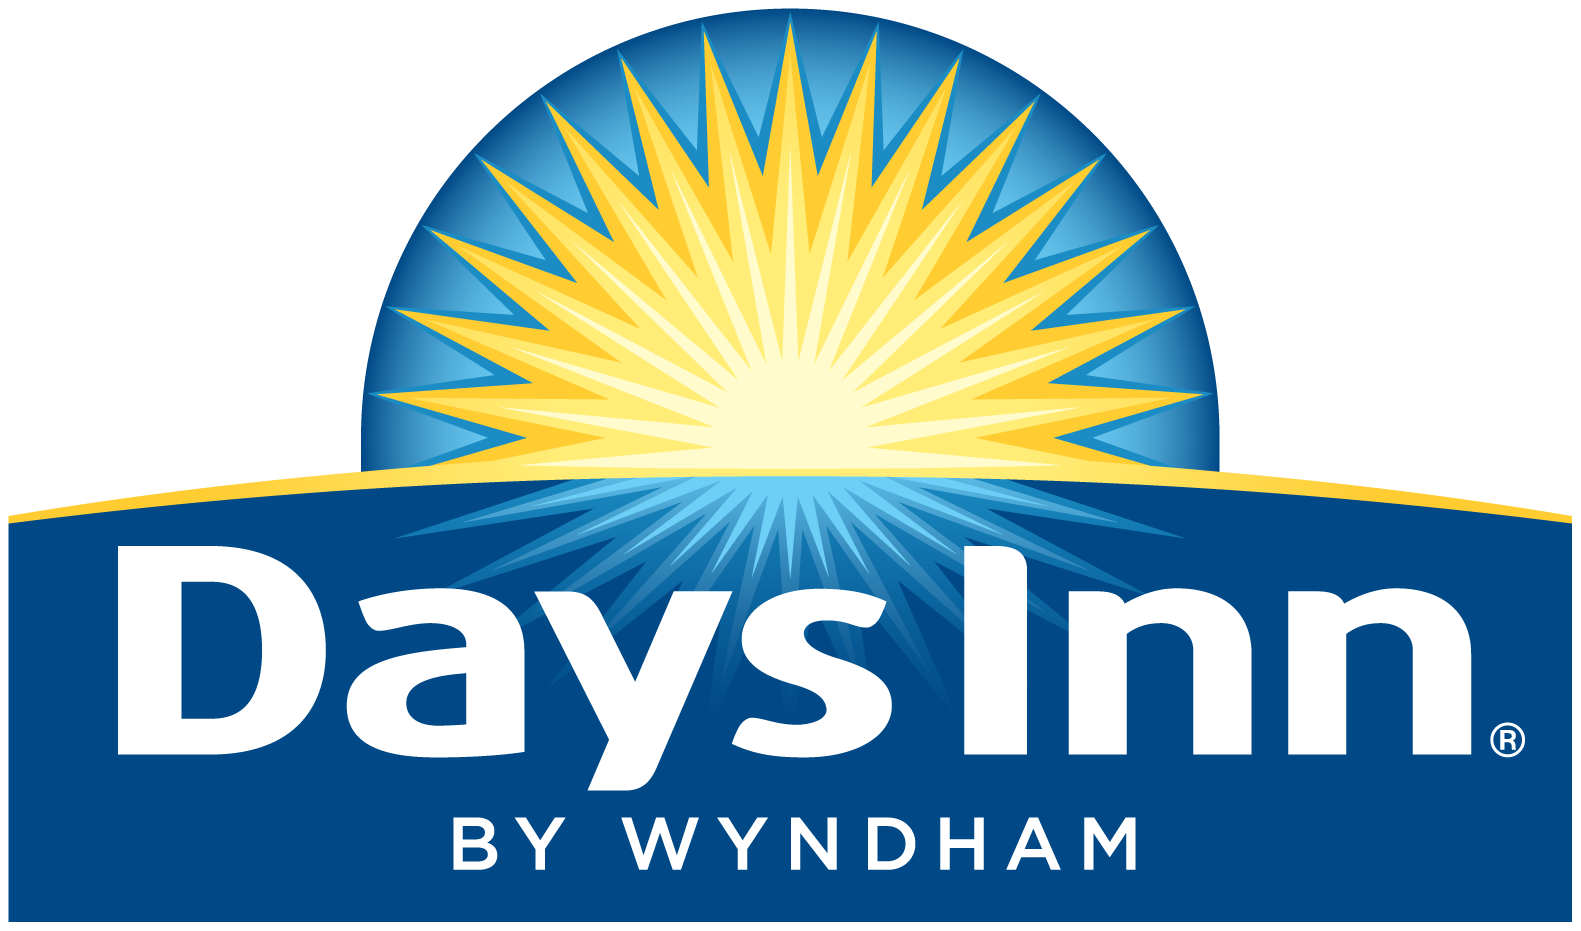 Ahead of spin-off, Wyndham Hotel Group puts a new spin on